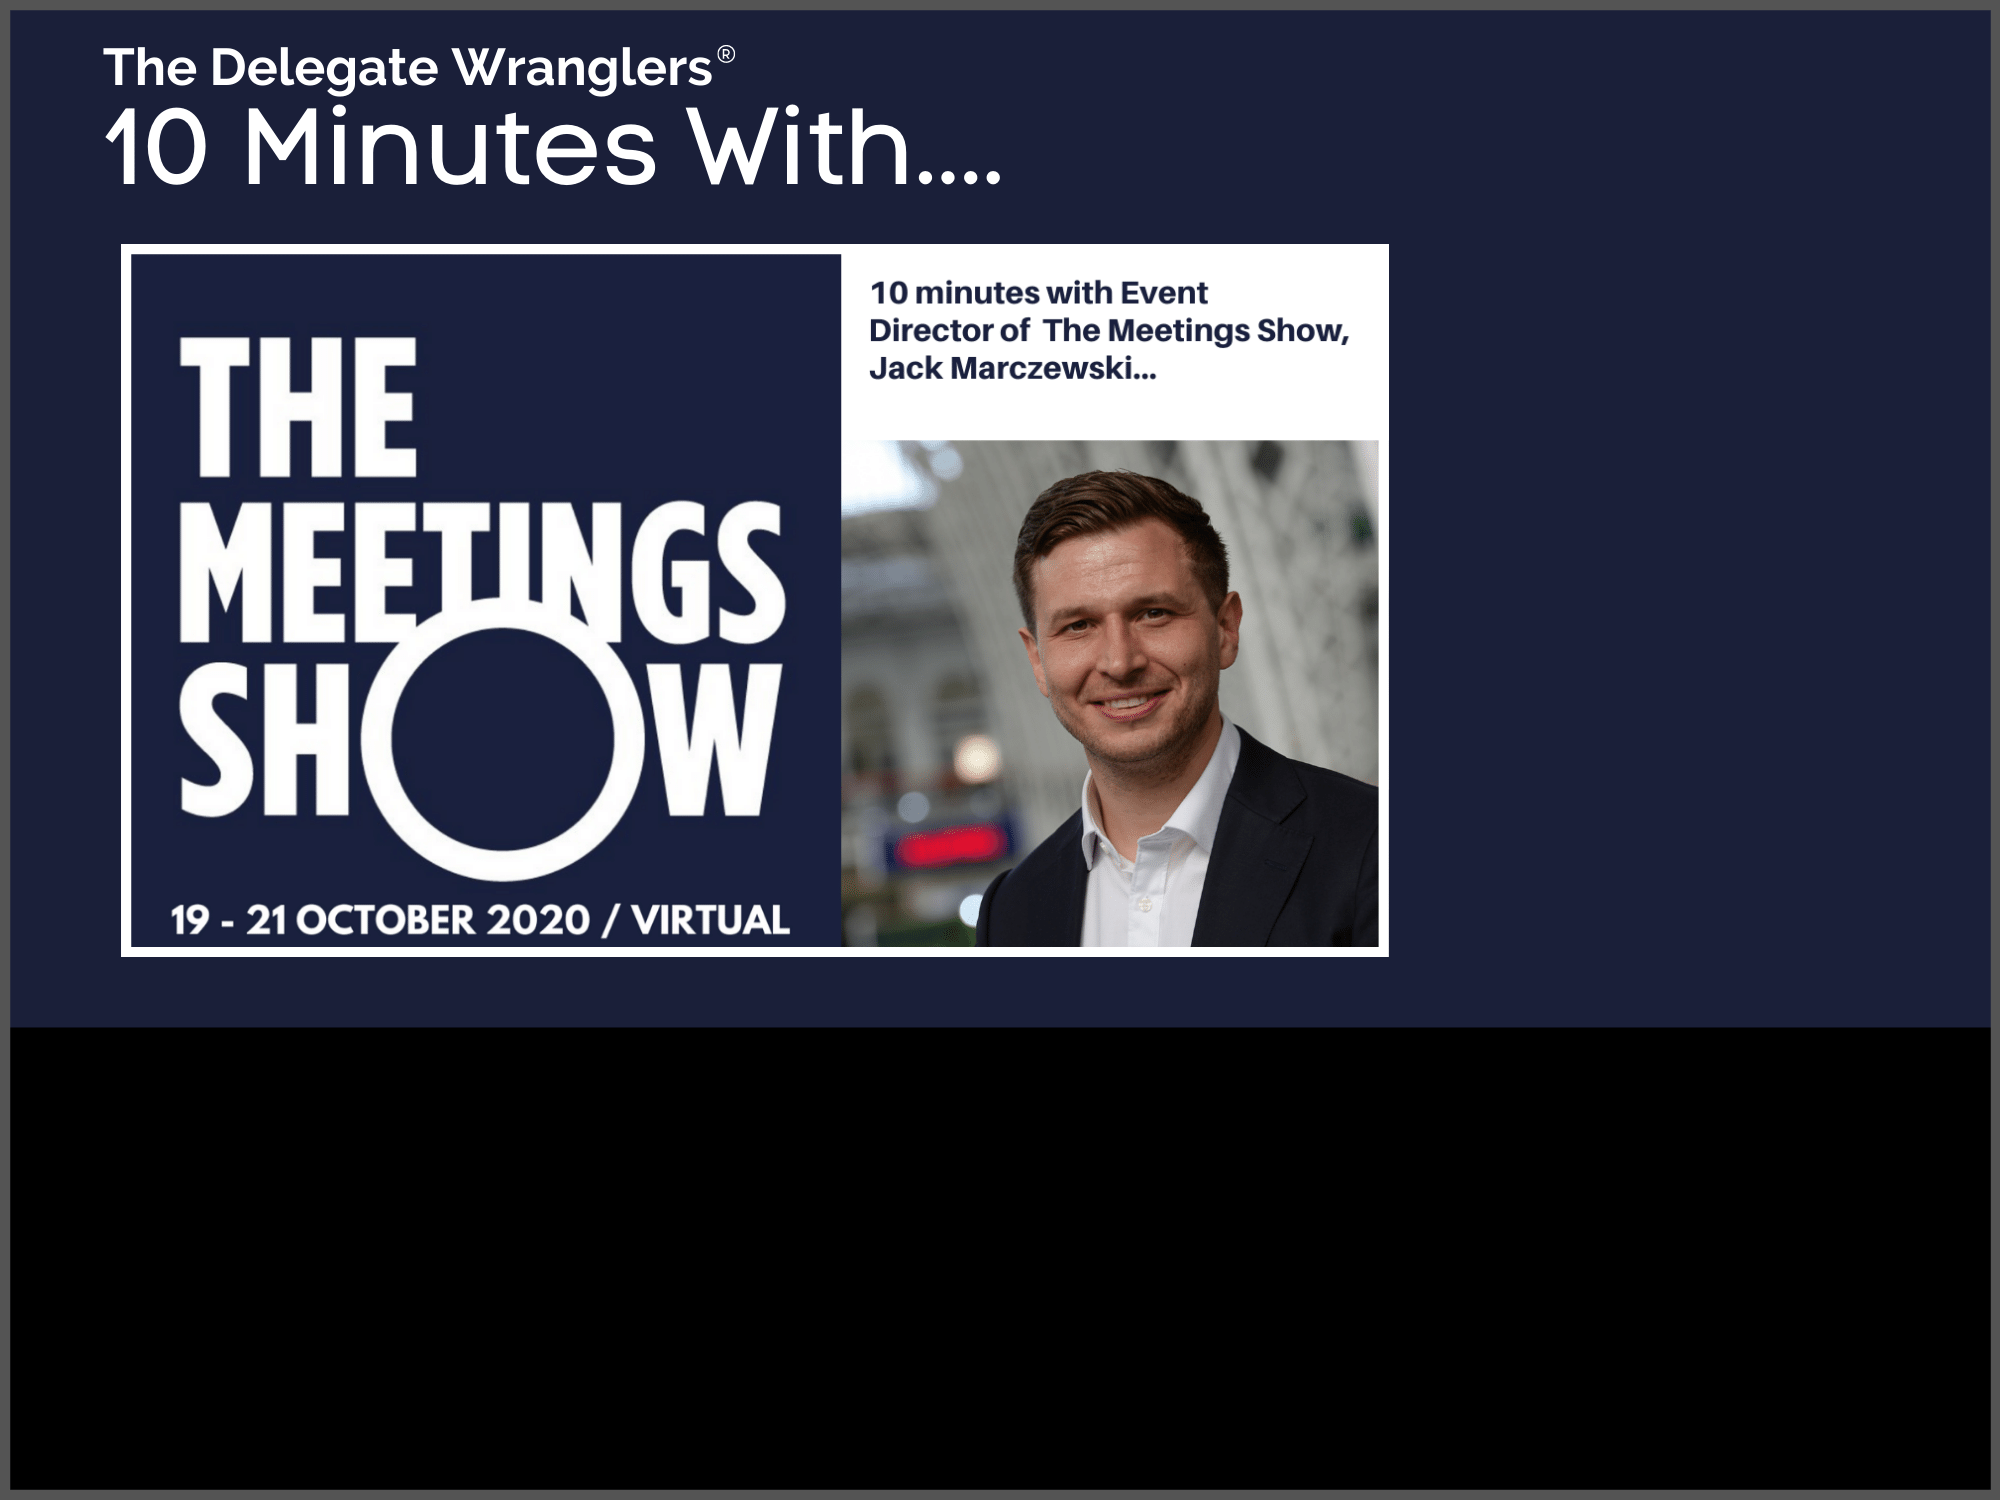 10 Minutes With....Jack Marczewski of The Meetings Show